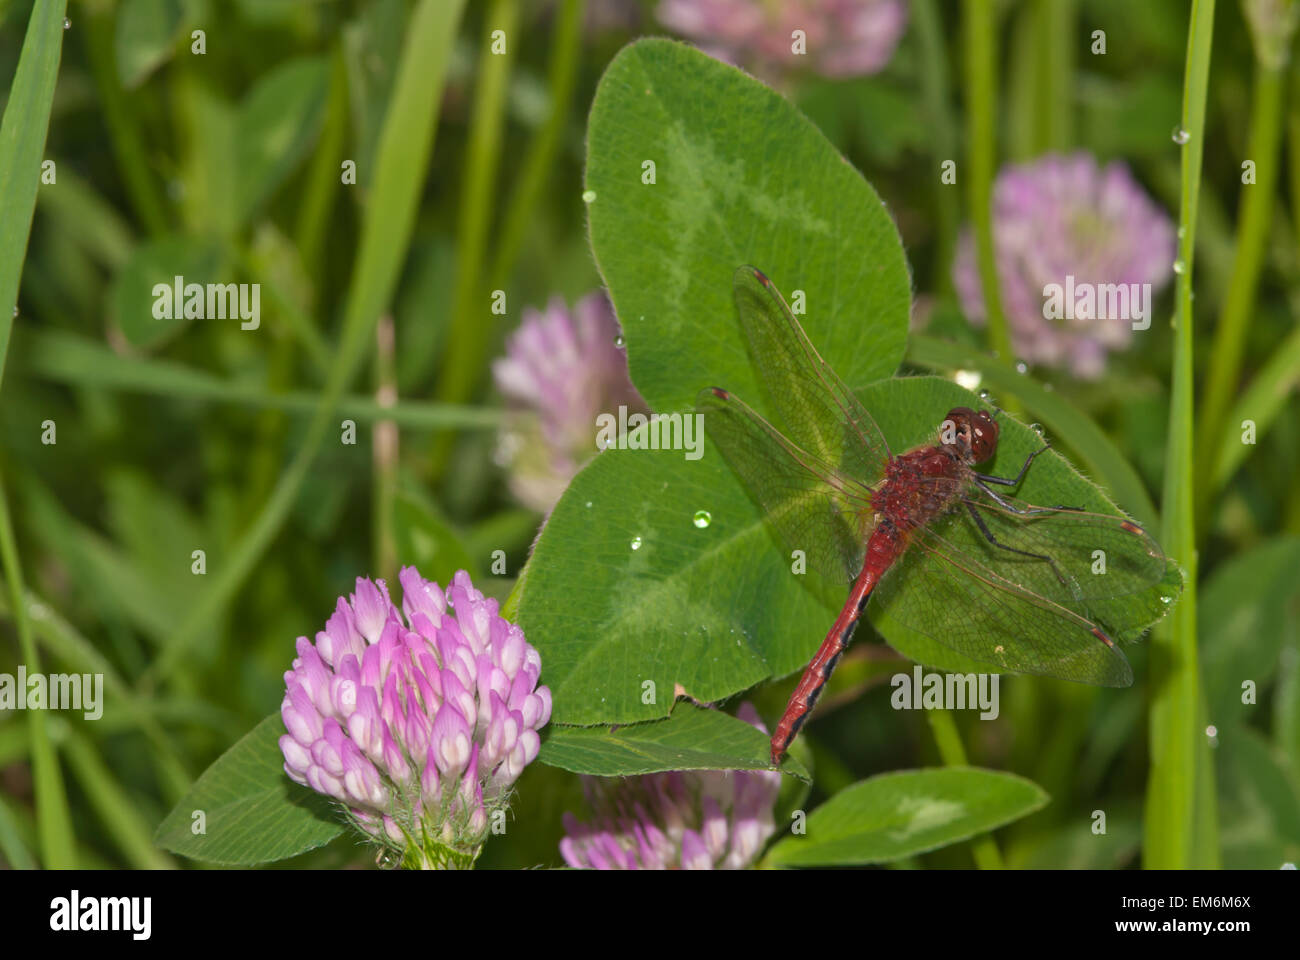 Cherry-faced meadowhawk, Sympetrum internum, perched on red clover, Triflolium pratense, Wagner Bog Natural Area, Stock Photo